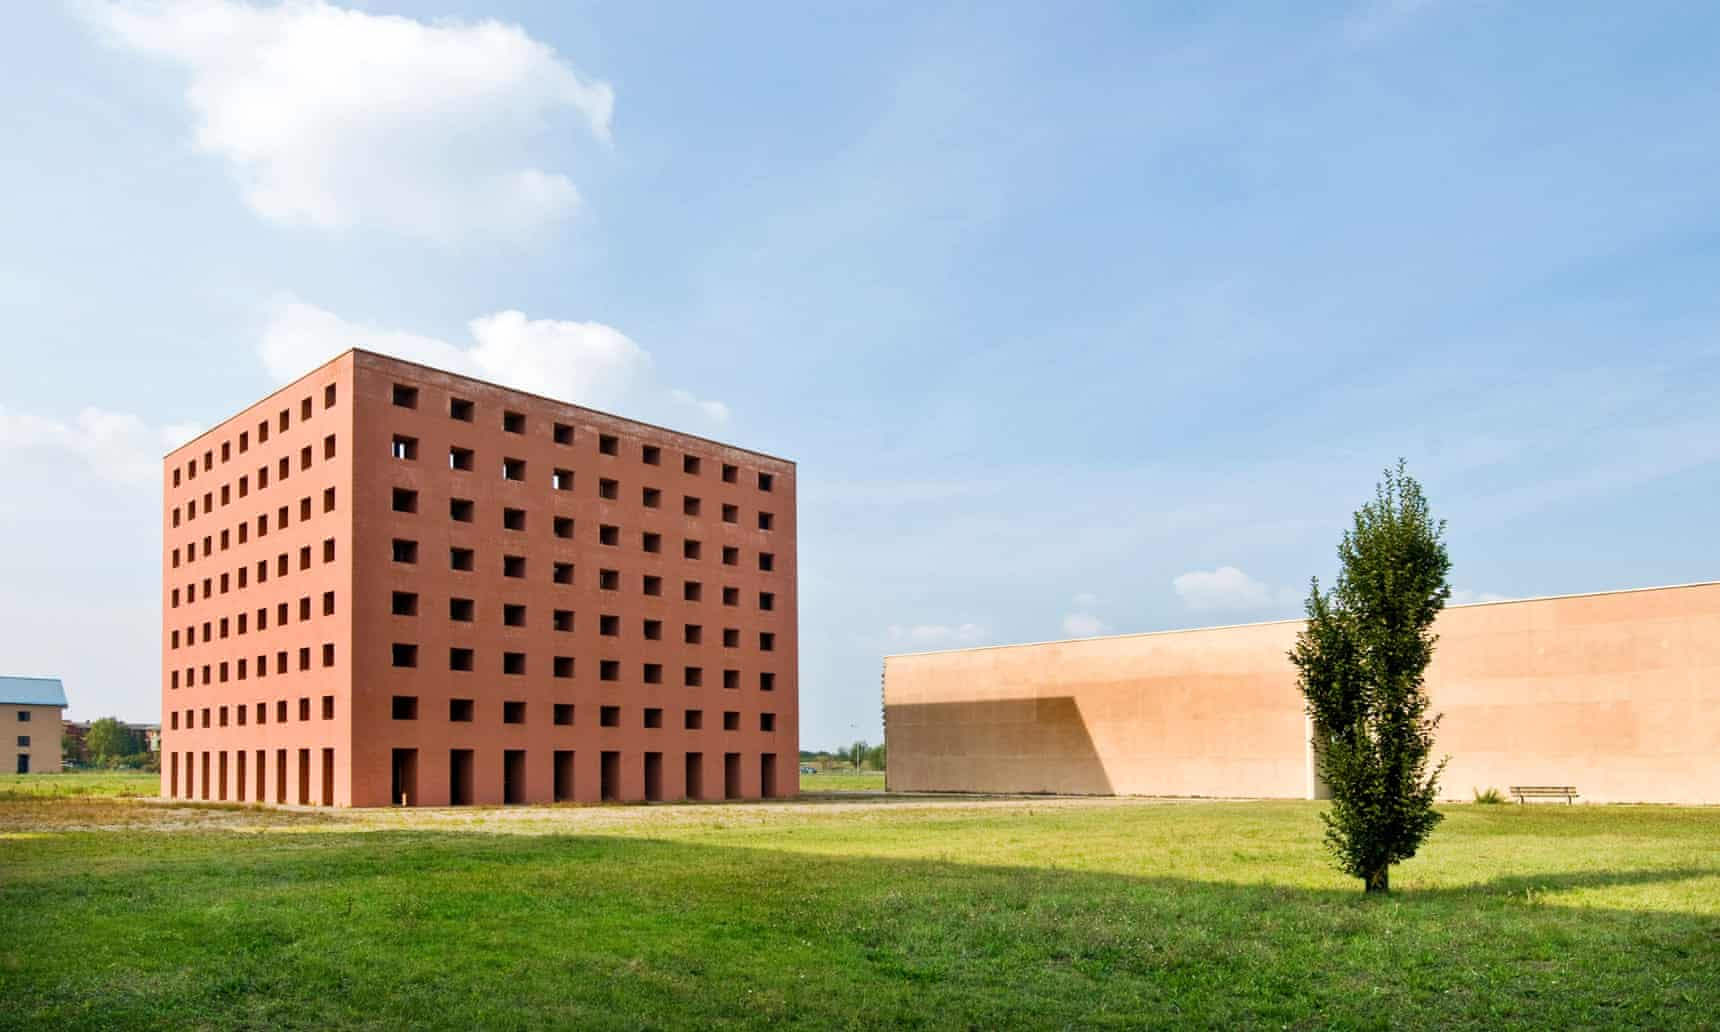 Architect Aldo Rossi's striking San Cataldo cemetery in Modena, Italy.